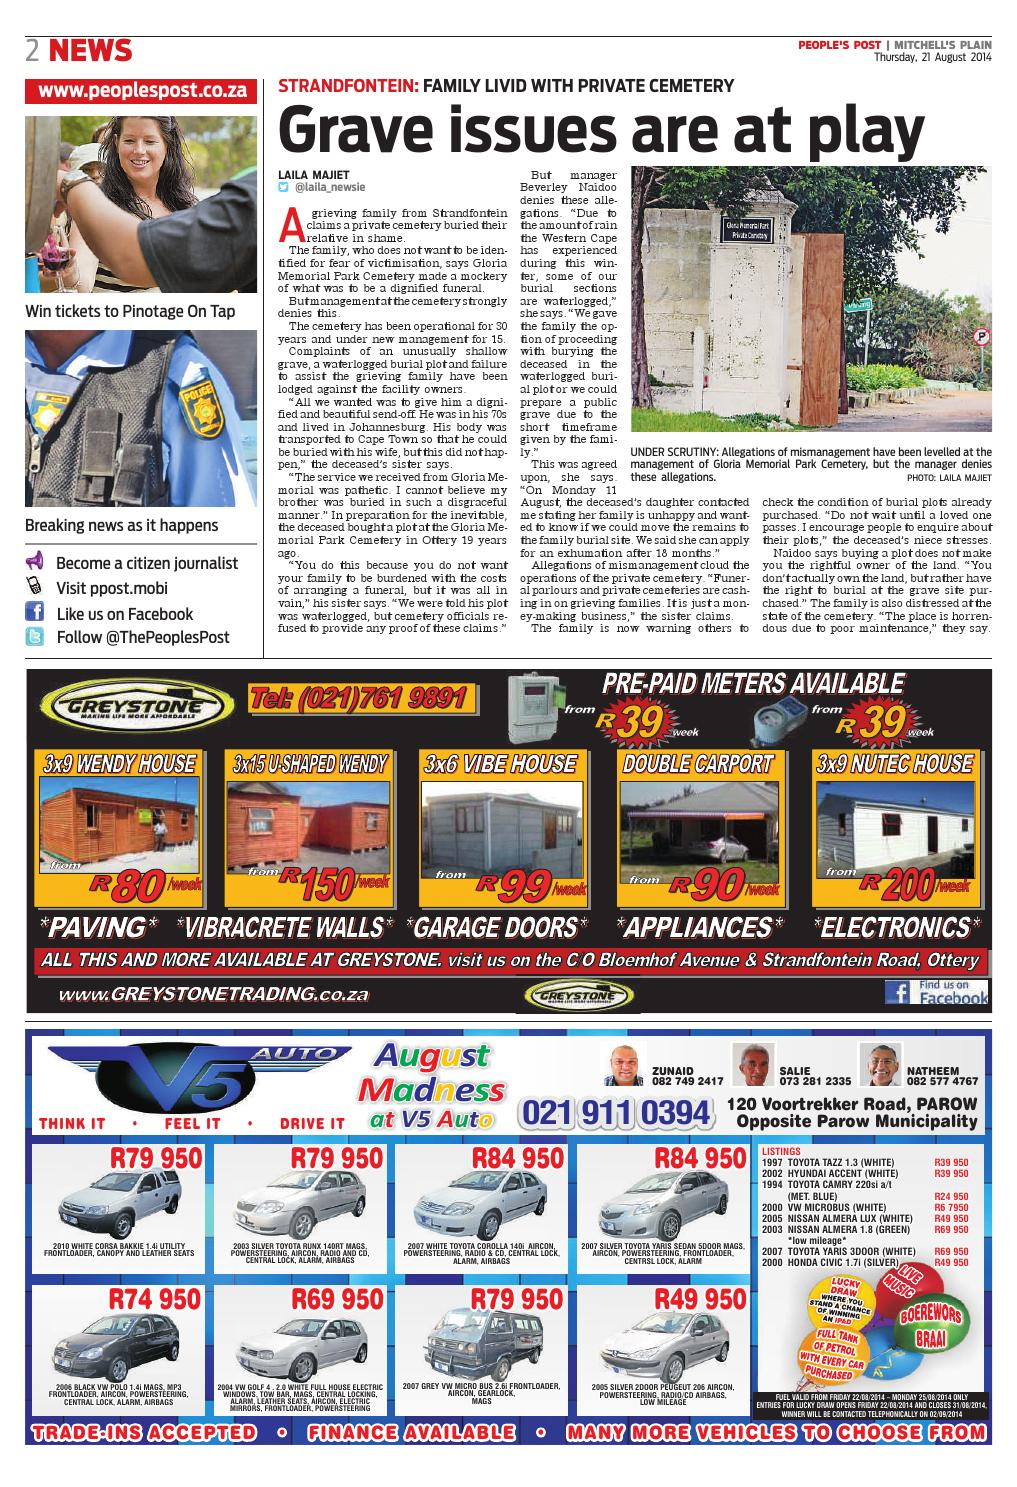 Peoples post mitchells plain 21 aug 2014 by People's Post